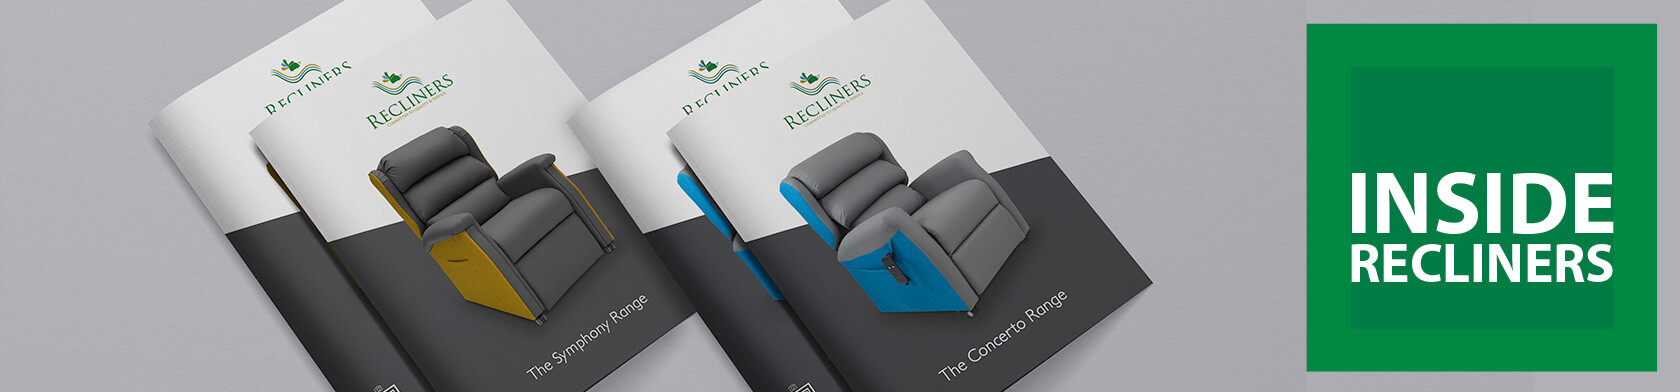 Recliners Introduces Size Set Offering to Two Healthcare Models